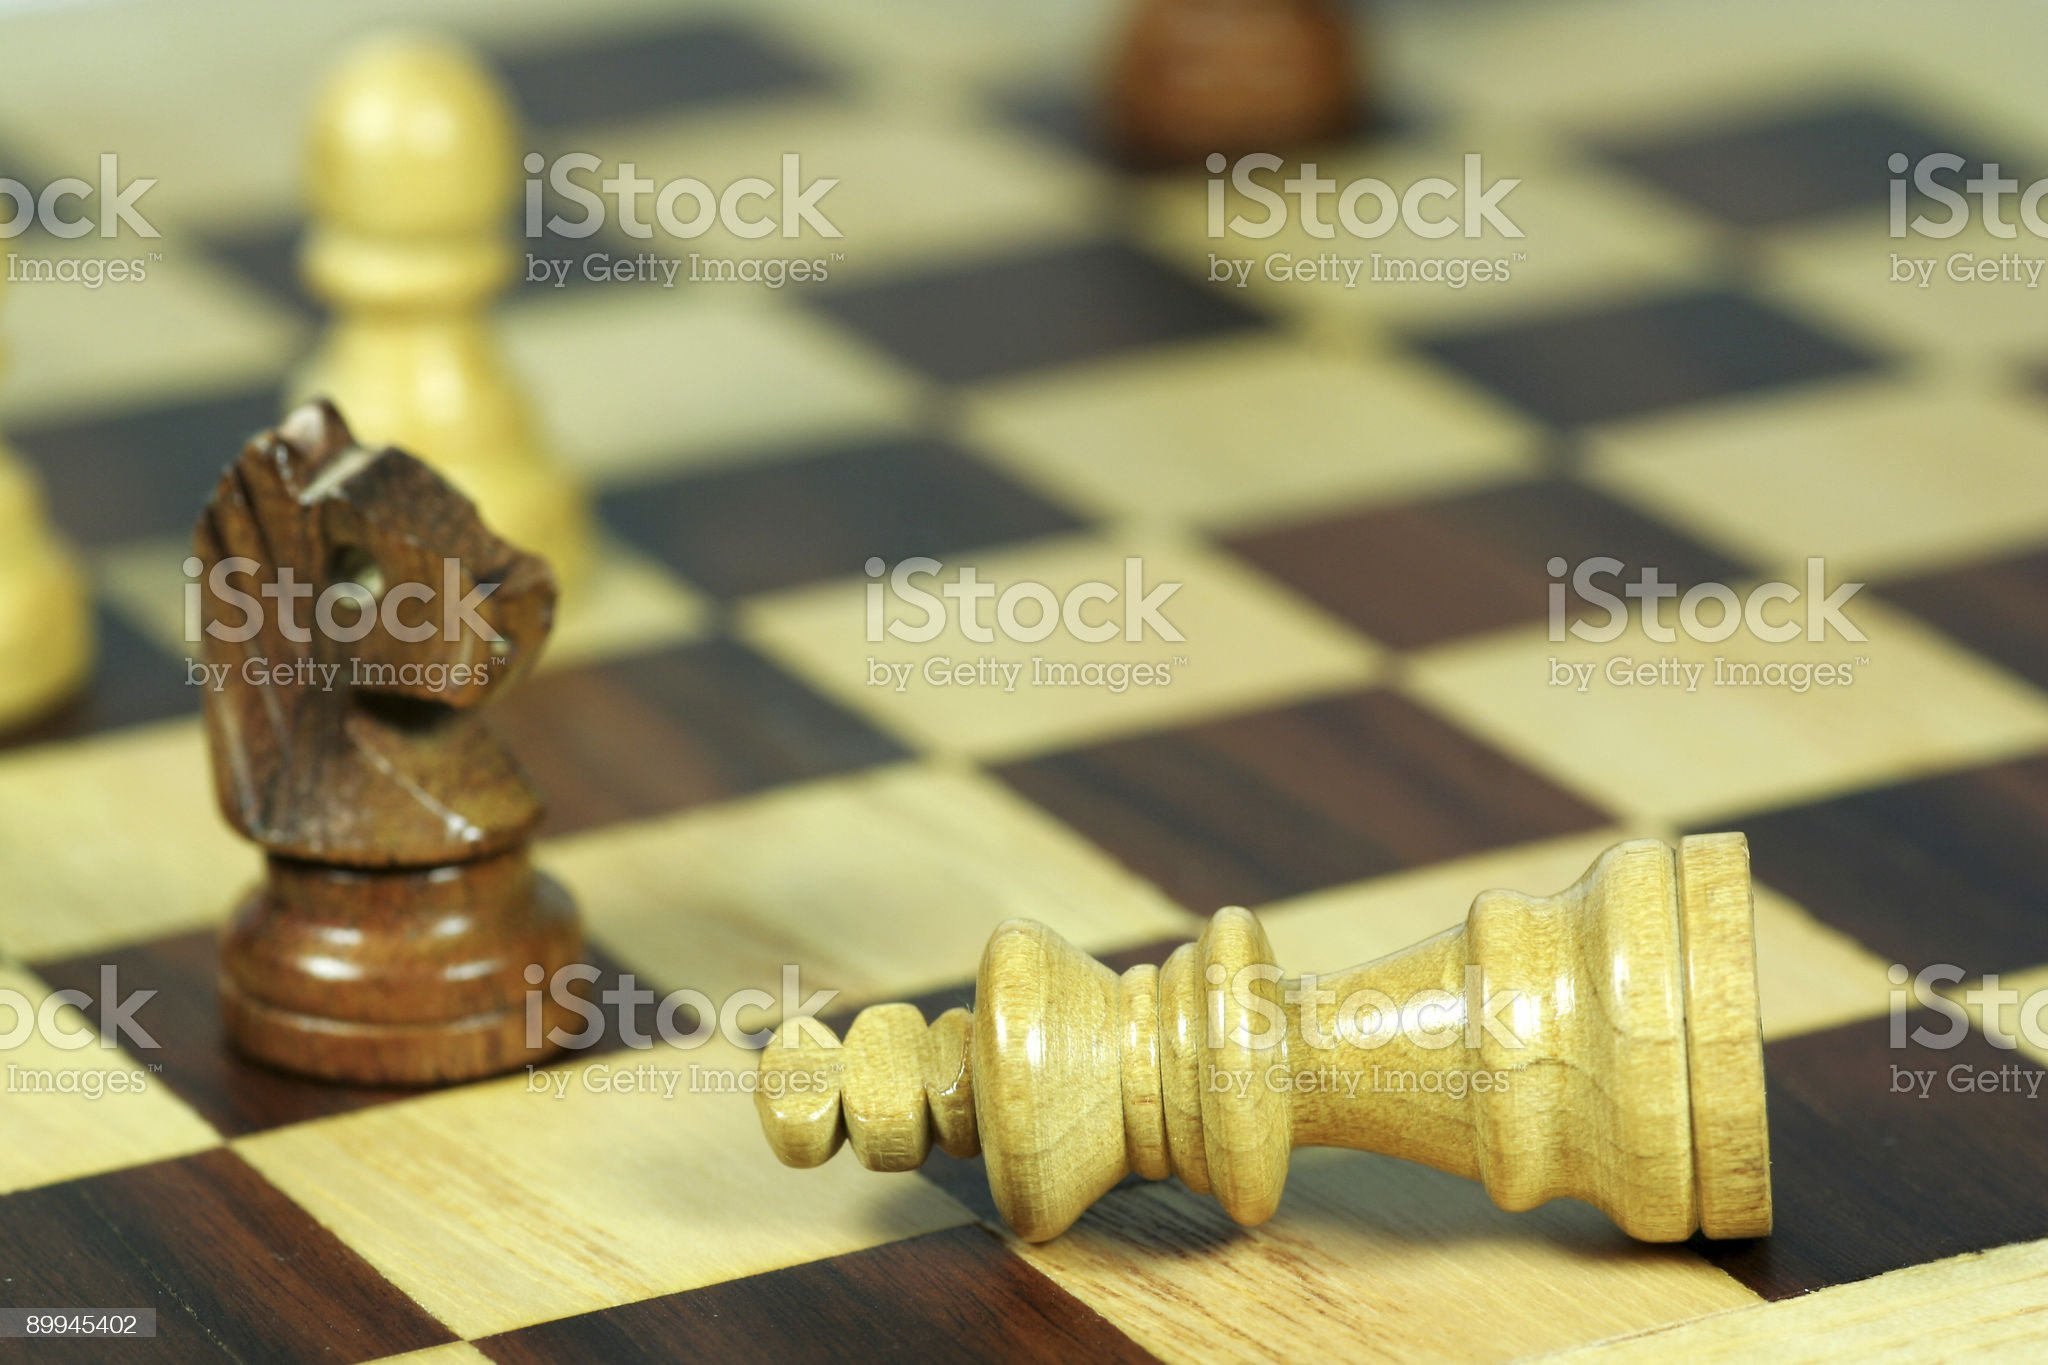 Ceckmate royalty-free stock photo